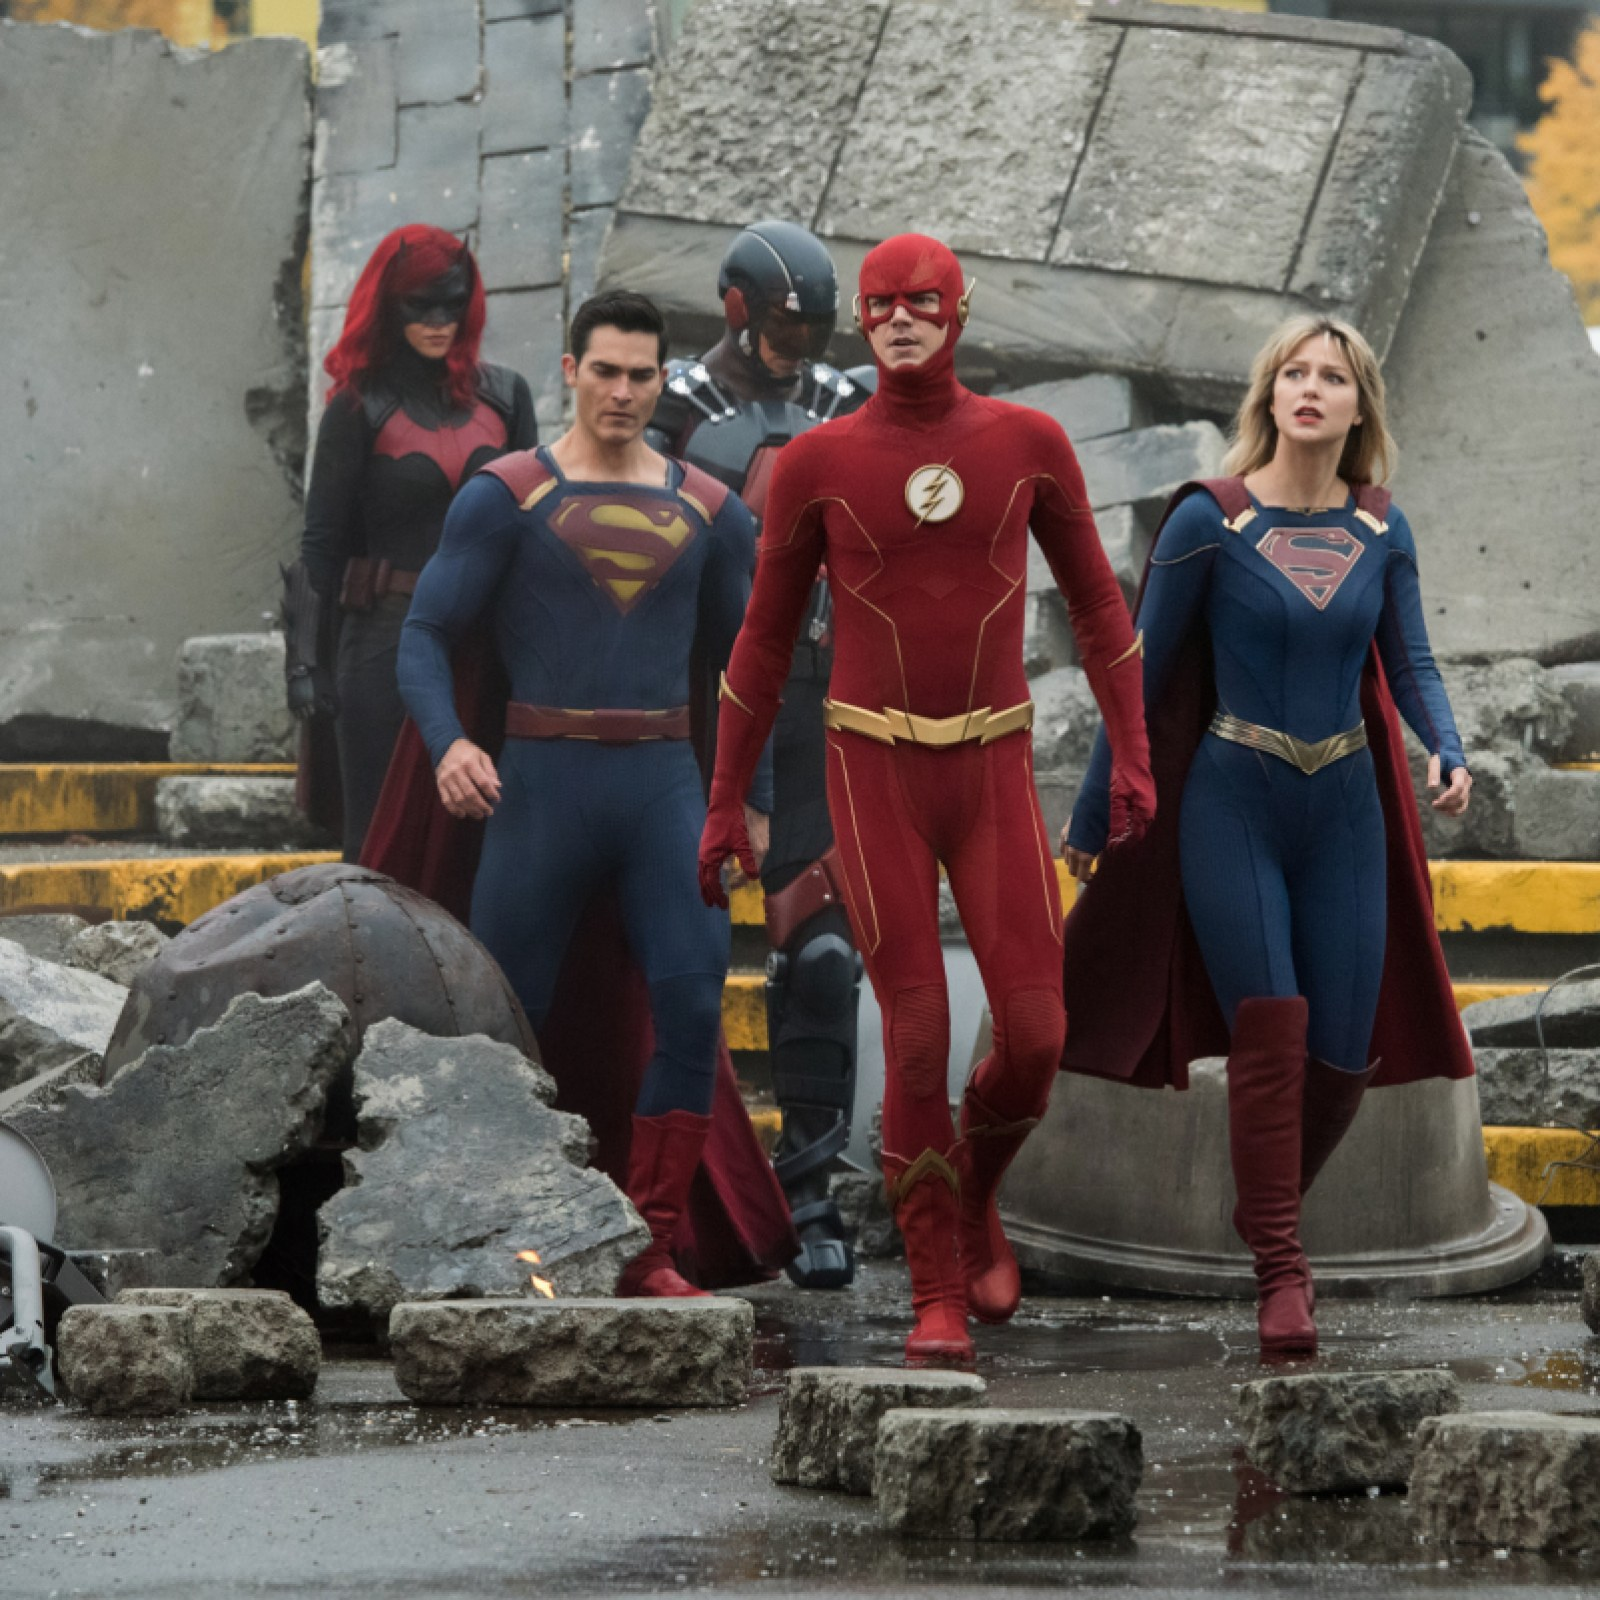 Aftermath Streaming crisis on infinite earths': when episodes are airing and how